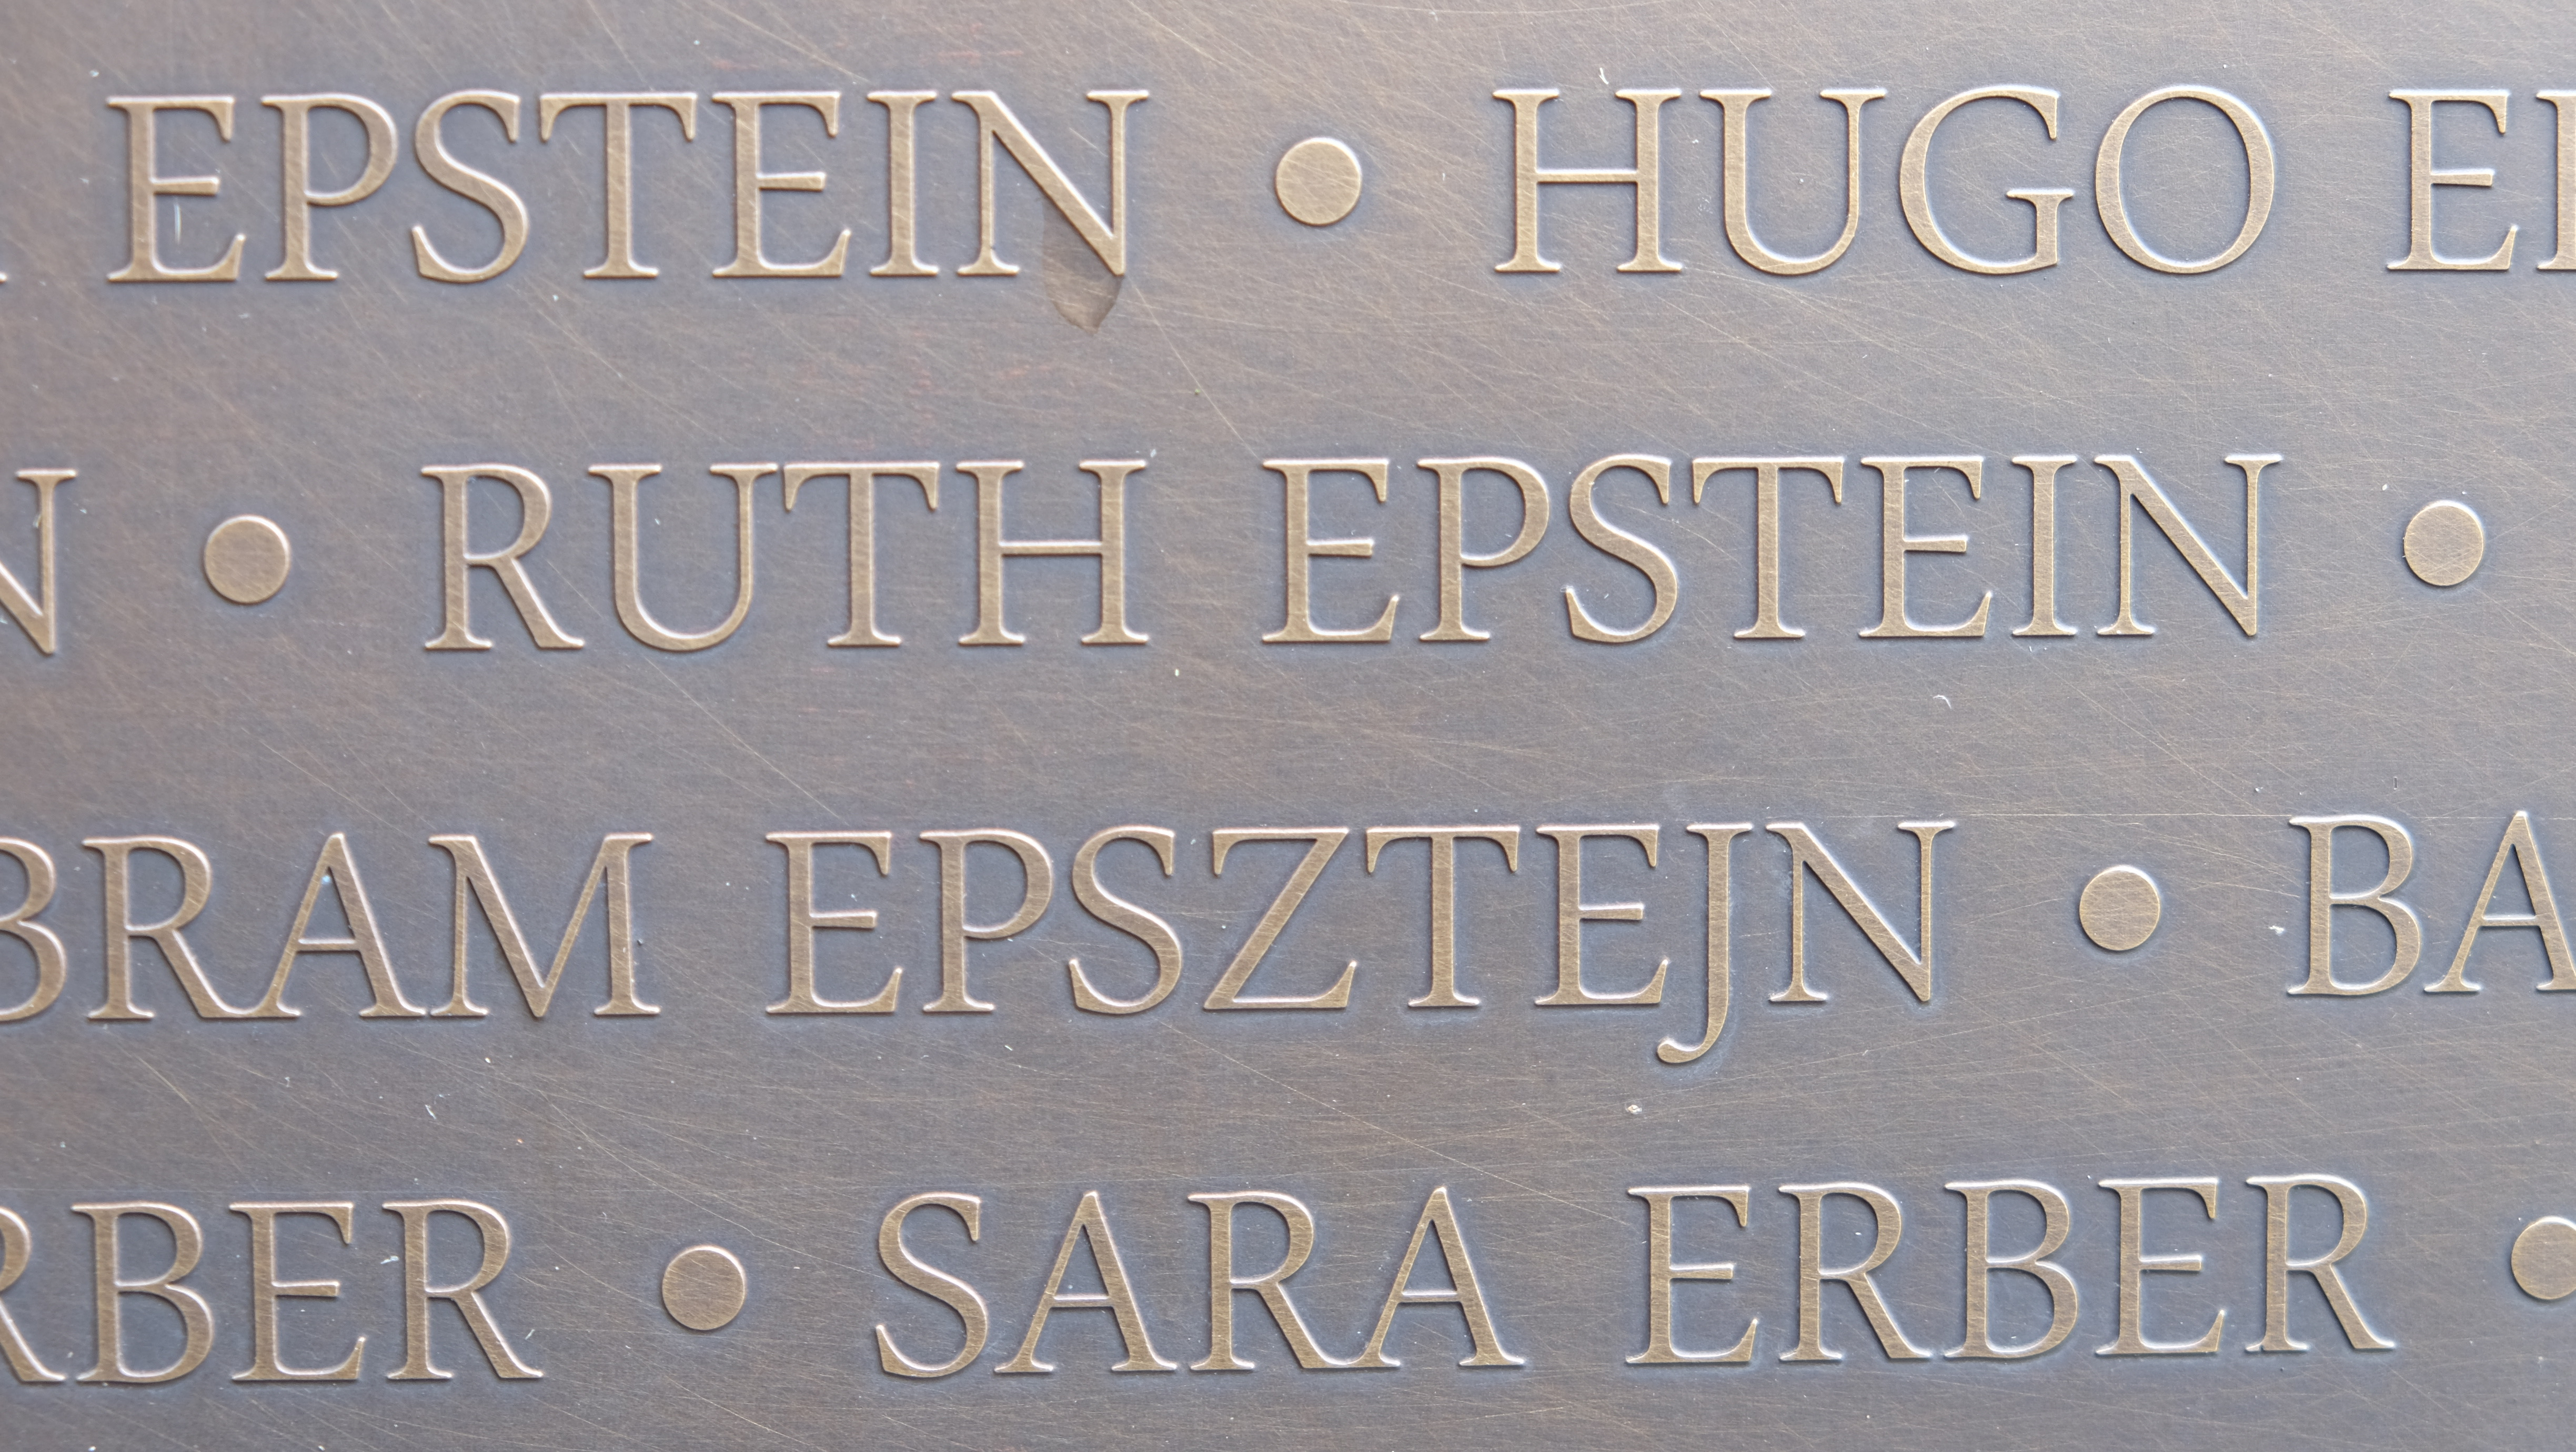 Ruth's name in bronze on Jewish refugees memorial wall